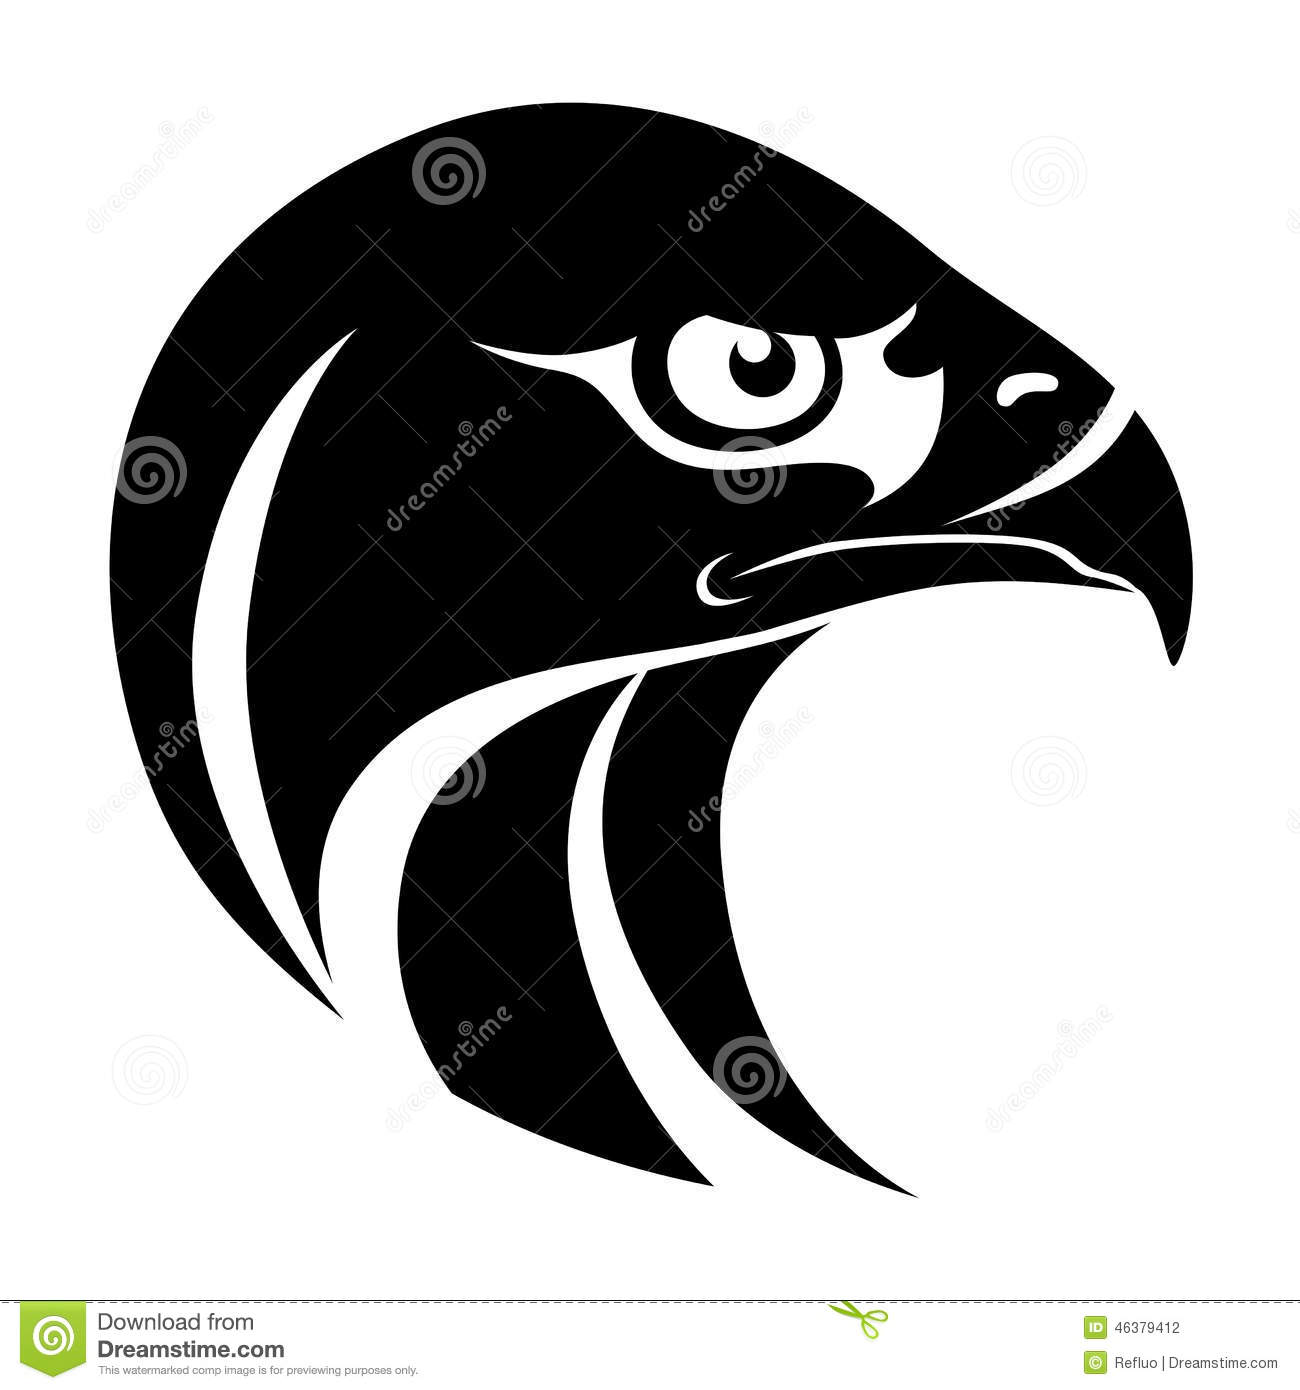 Hawk Head Symbol Stock Vector - Image: 46379412